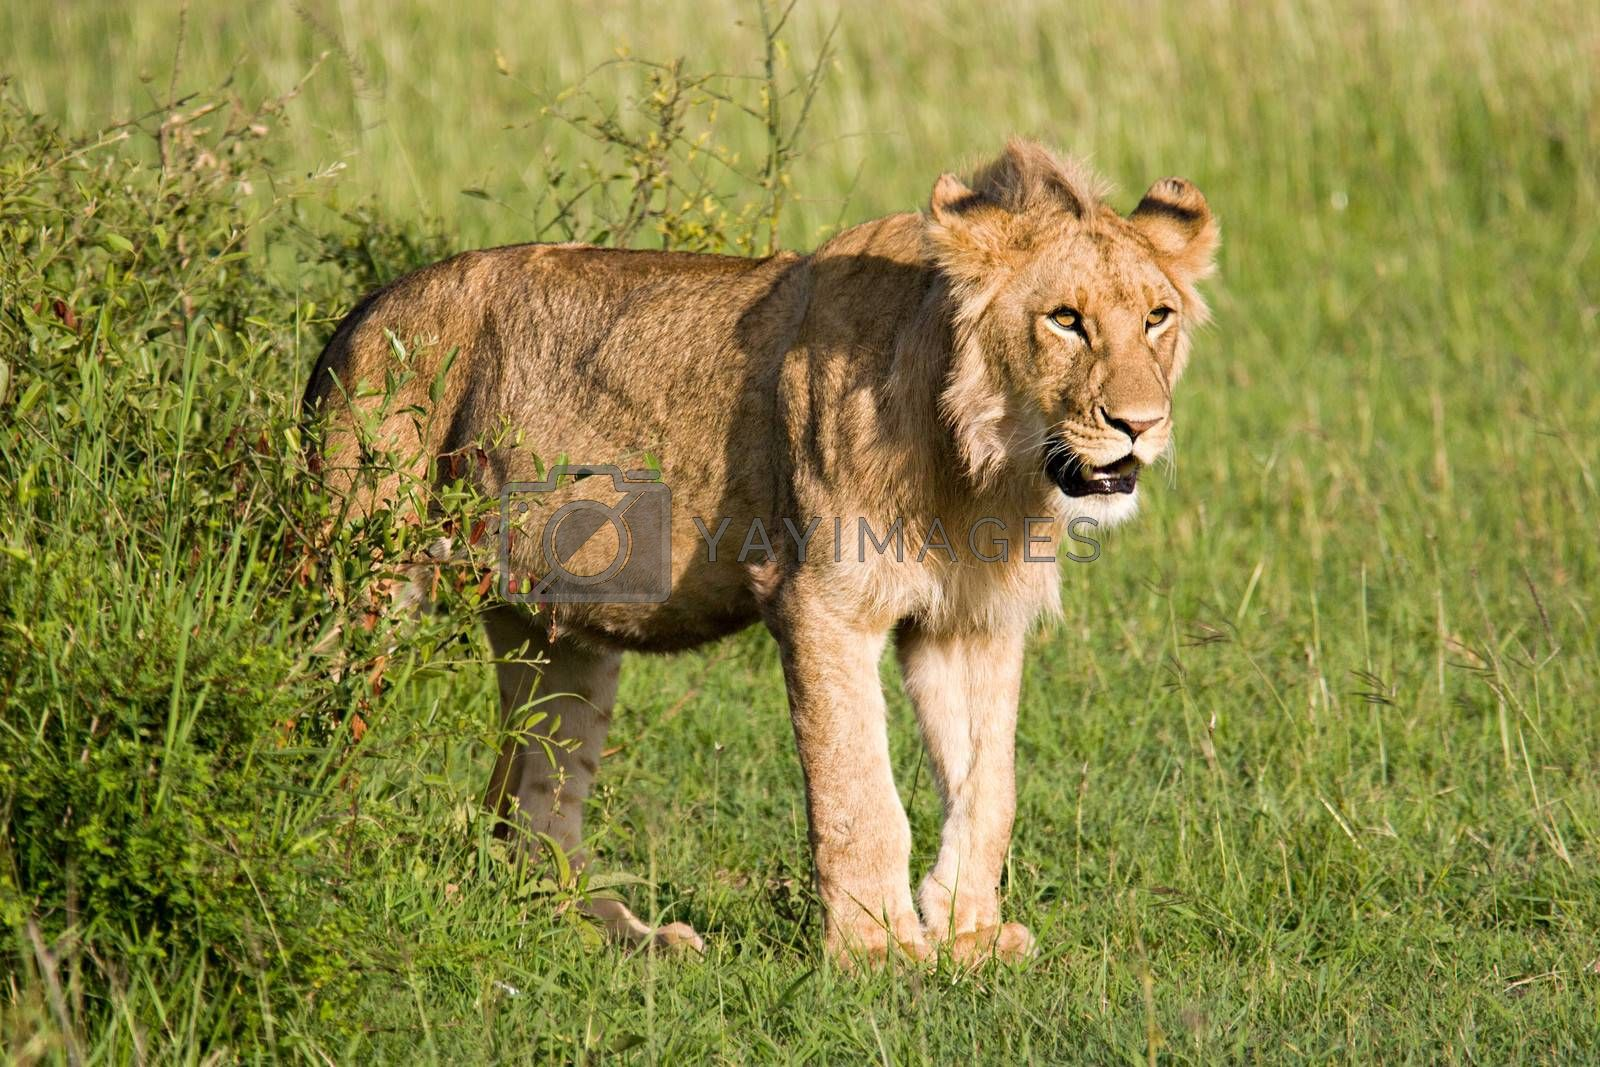 Royalty free image of Young Lion in the Savannah by ajn